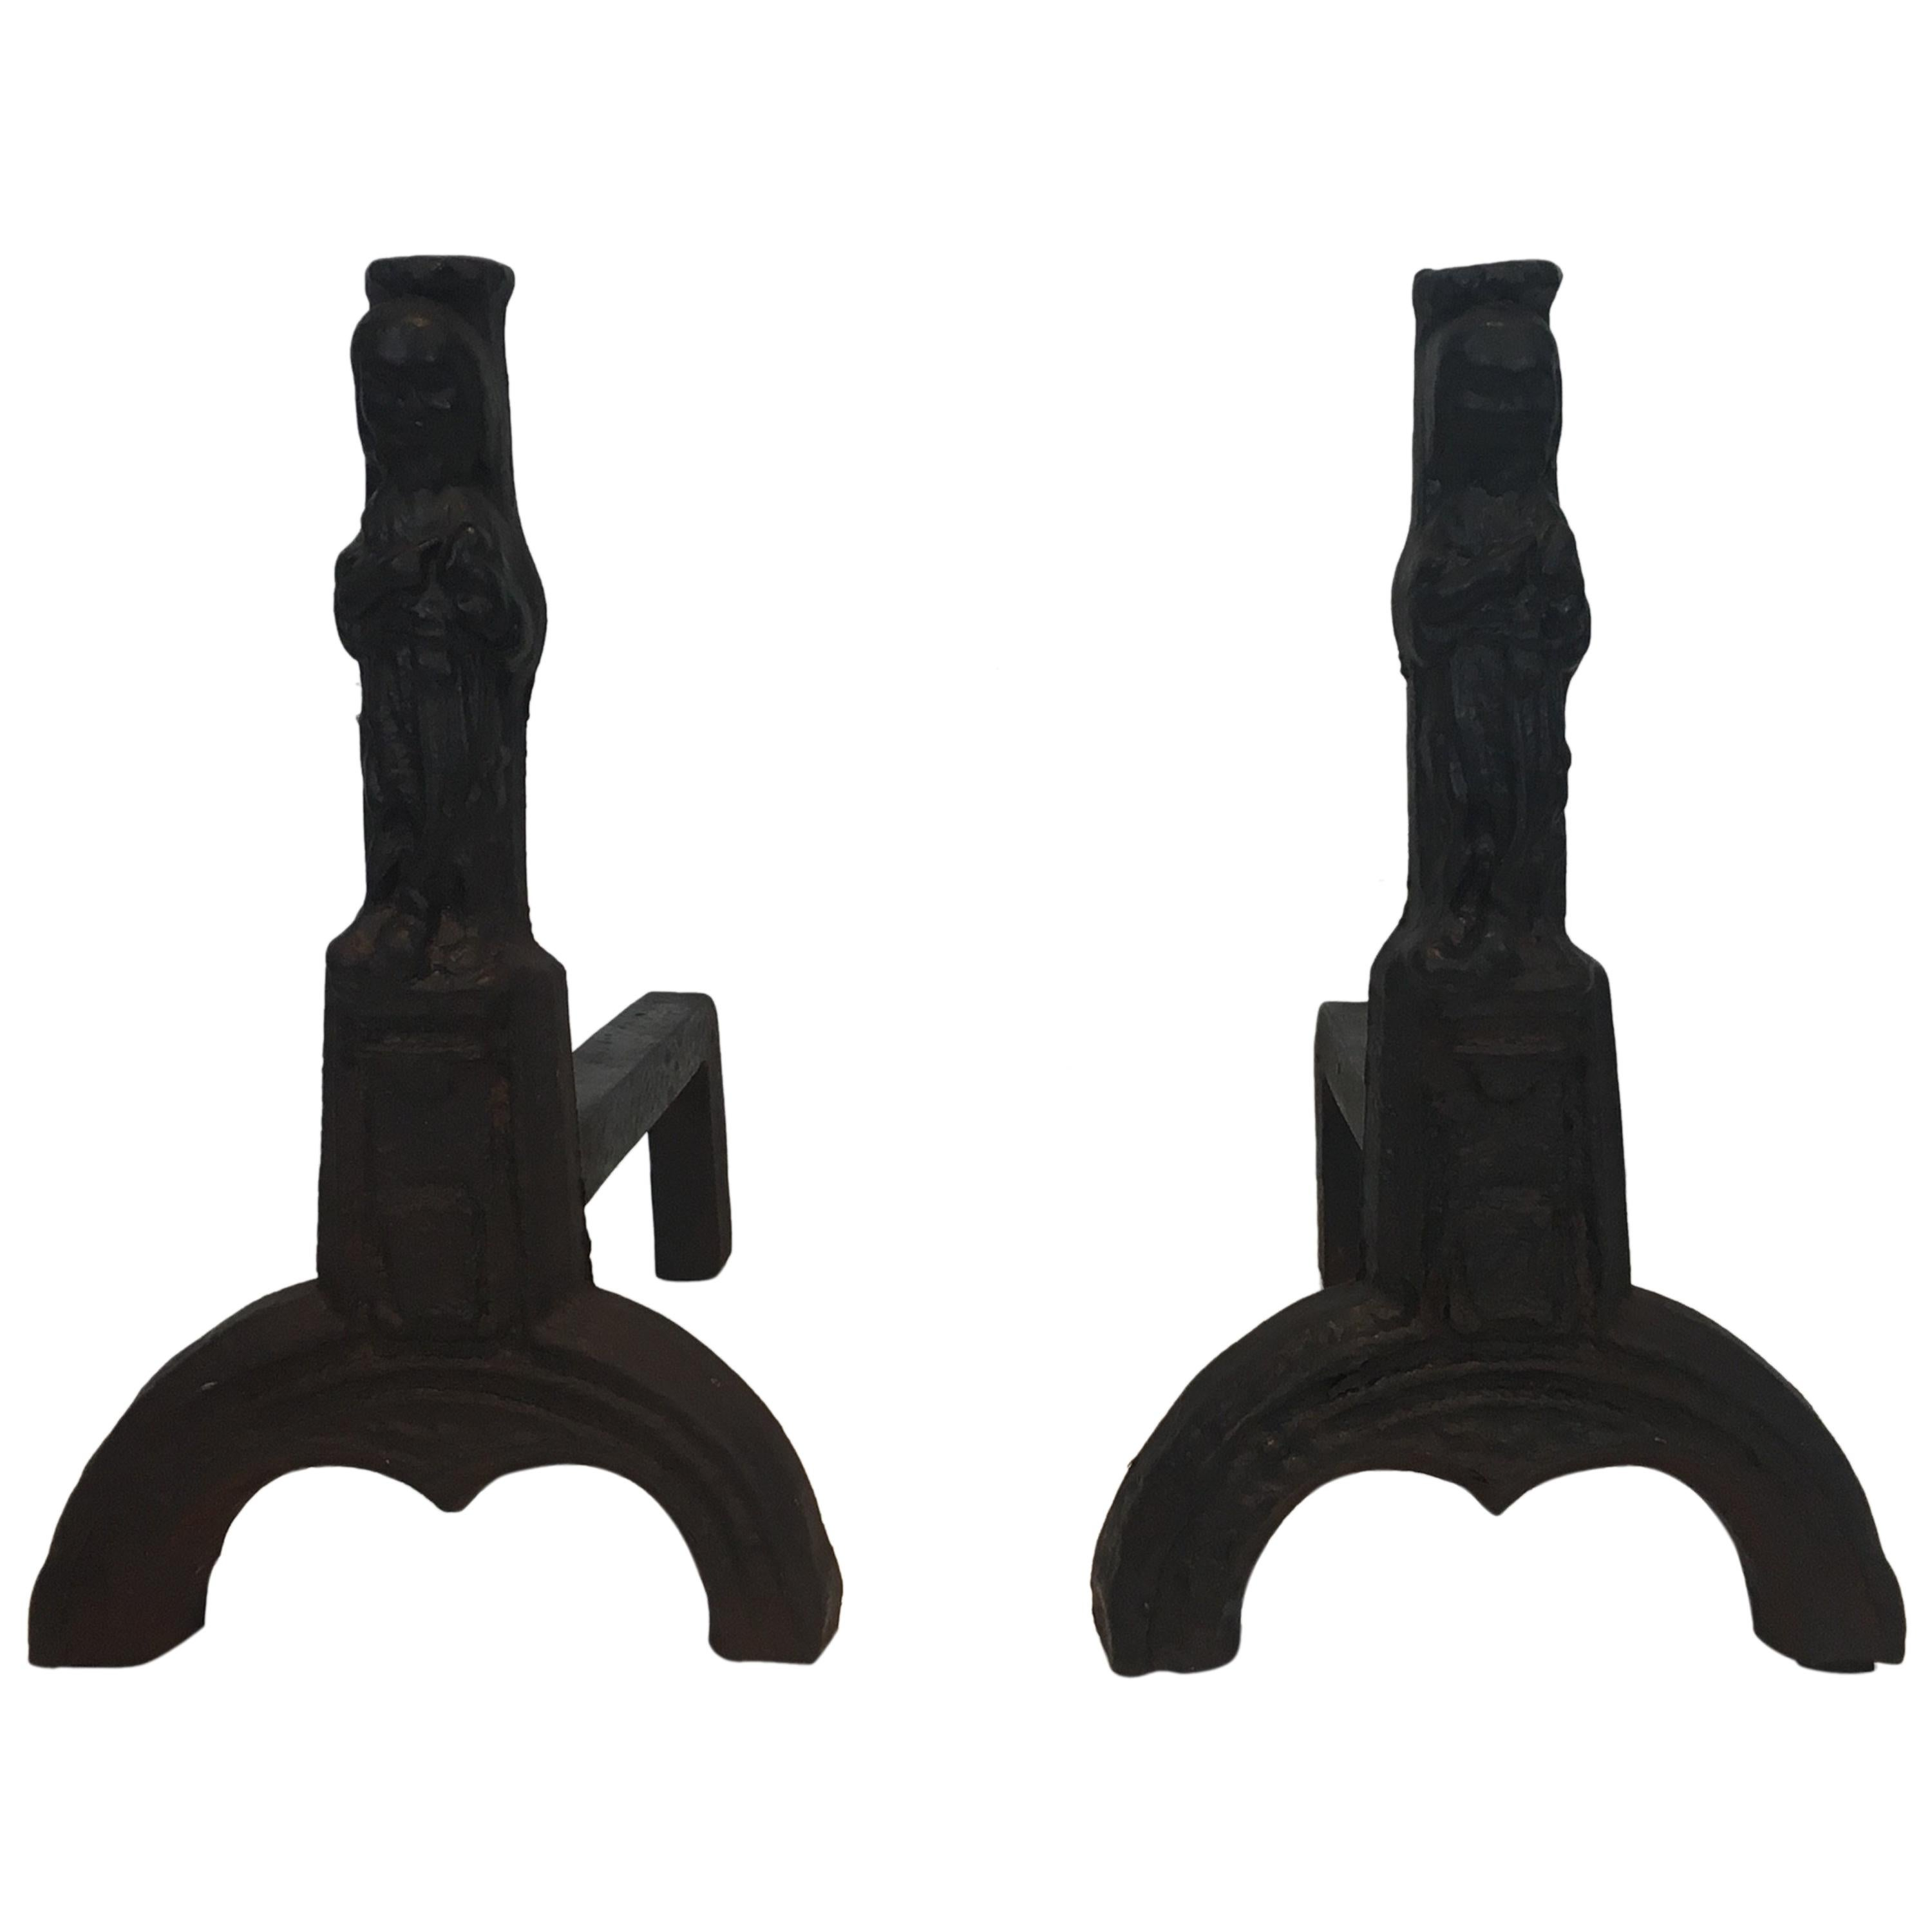 Pair of Cast Iron Andirons Representing an Evangelist, French, circa 1940